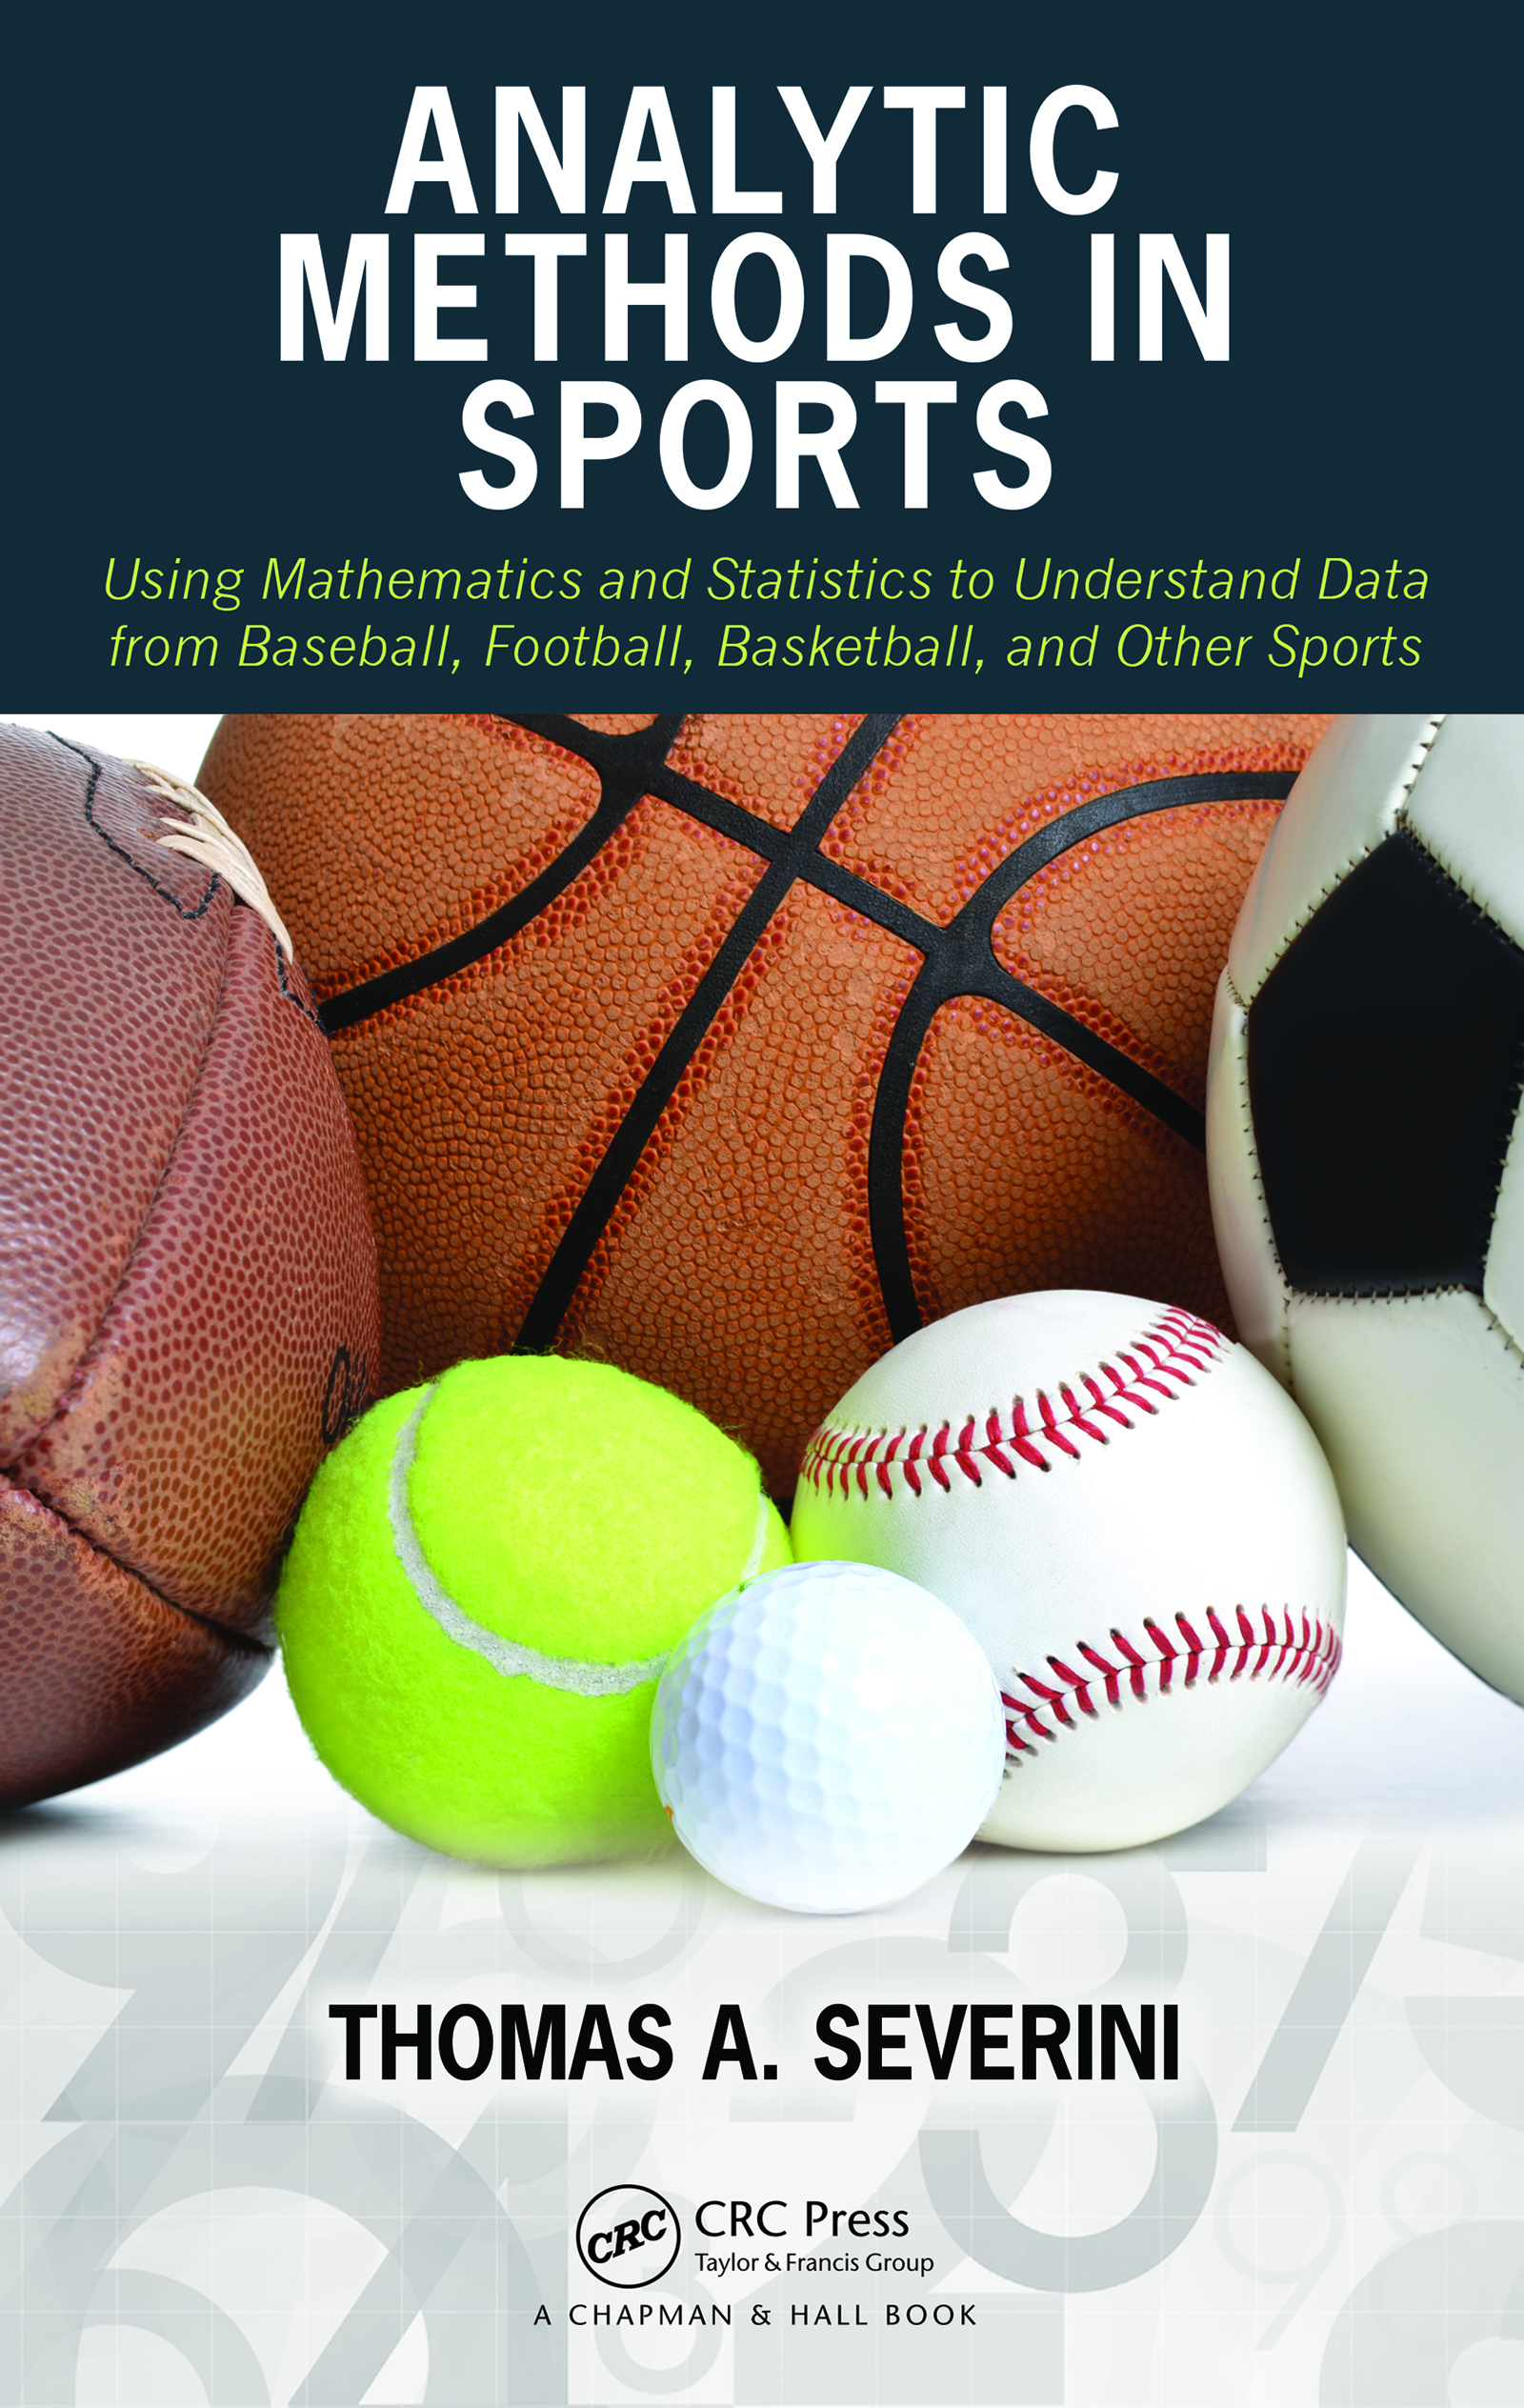 Analytic Methods in Sports